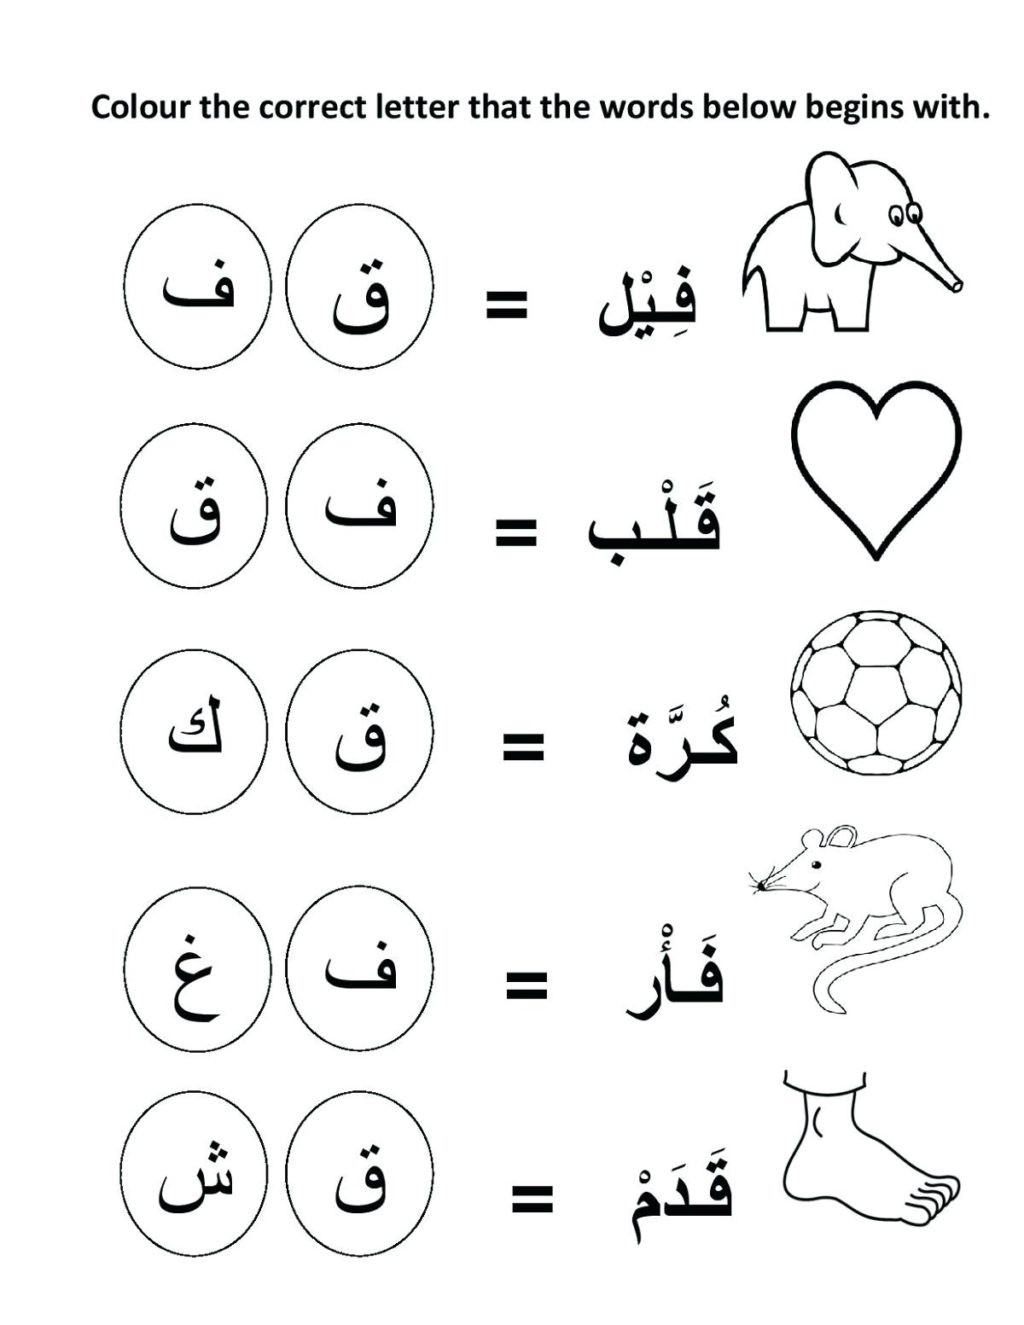 Arabic Alphabet Worksheets for Preschoolers Coloring Worksheets Arabic Alphabetoloring Pages Free